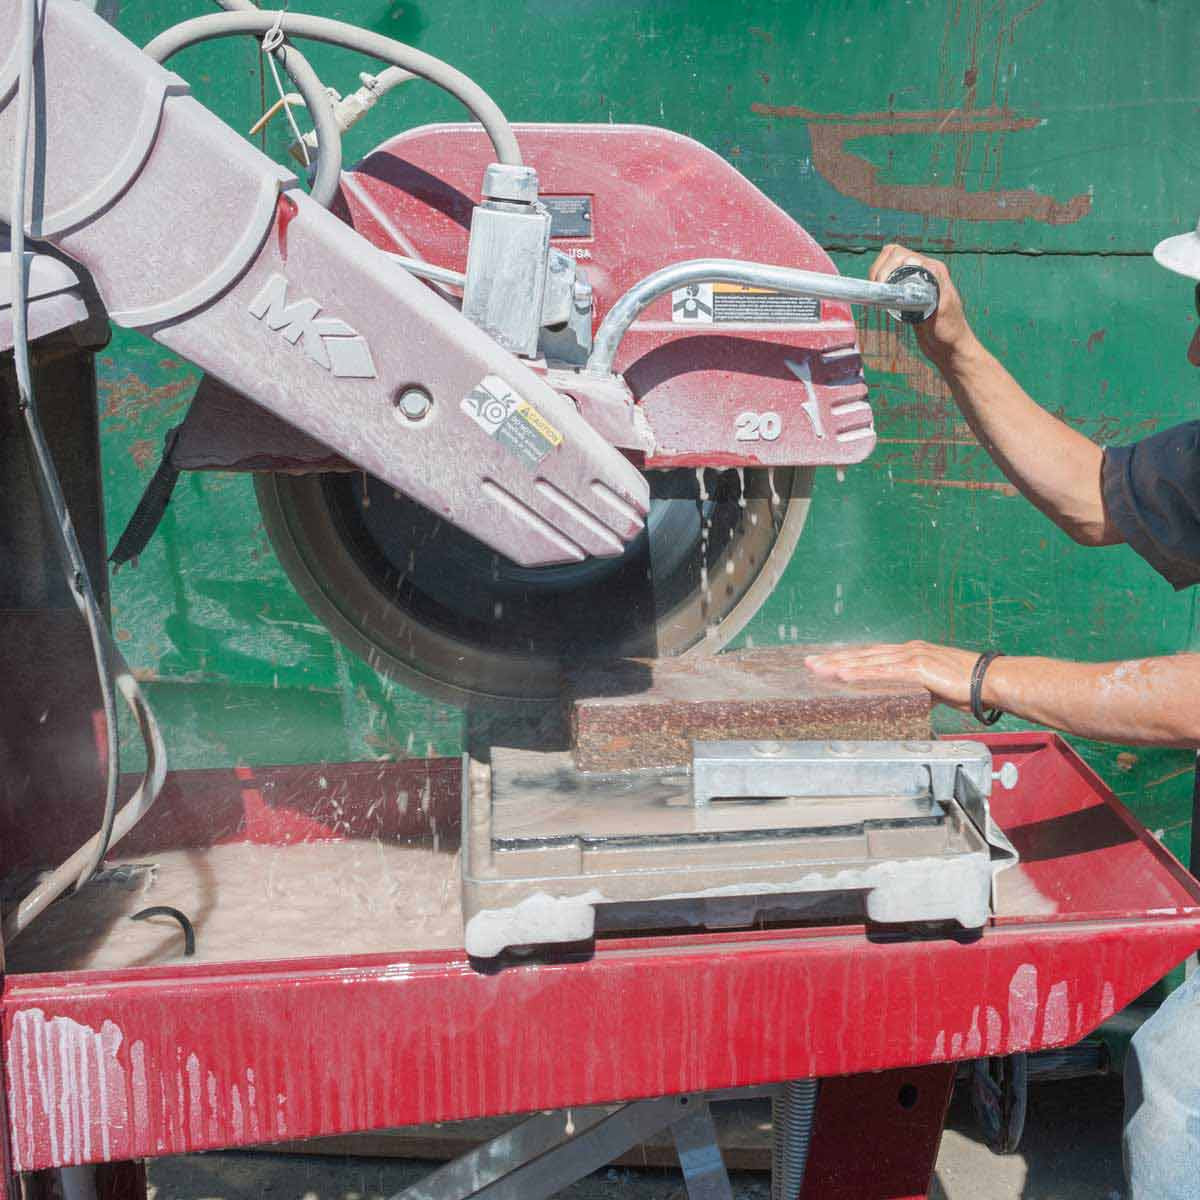 cutting with mk-5009t 20in masonry saw